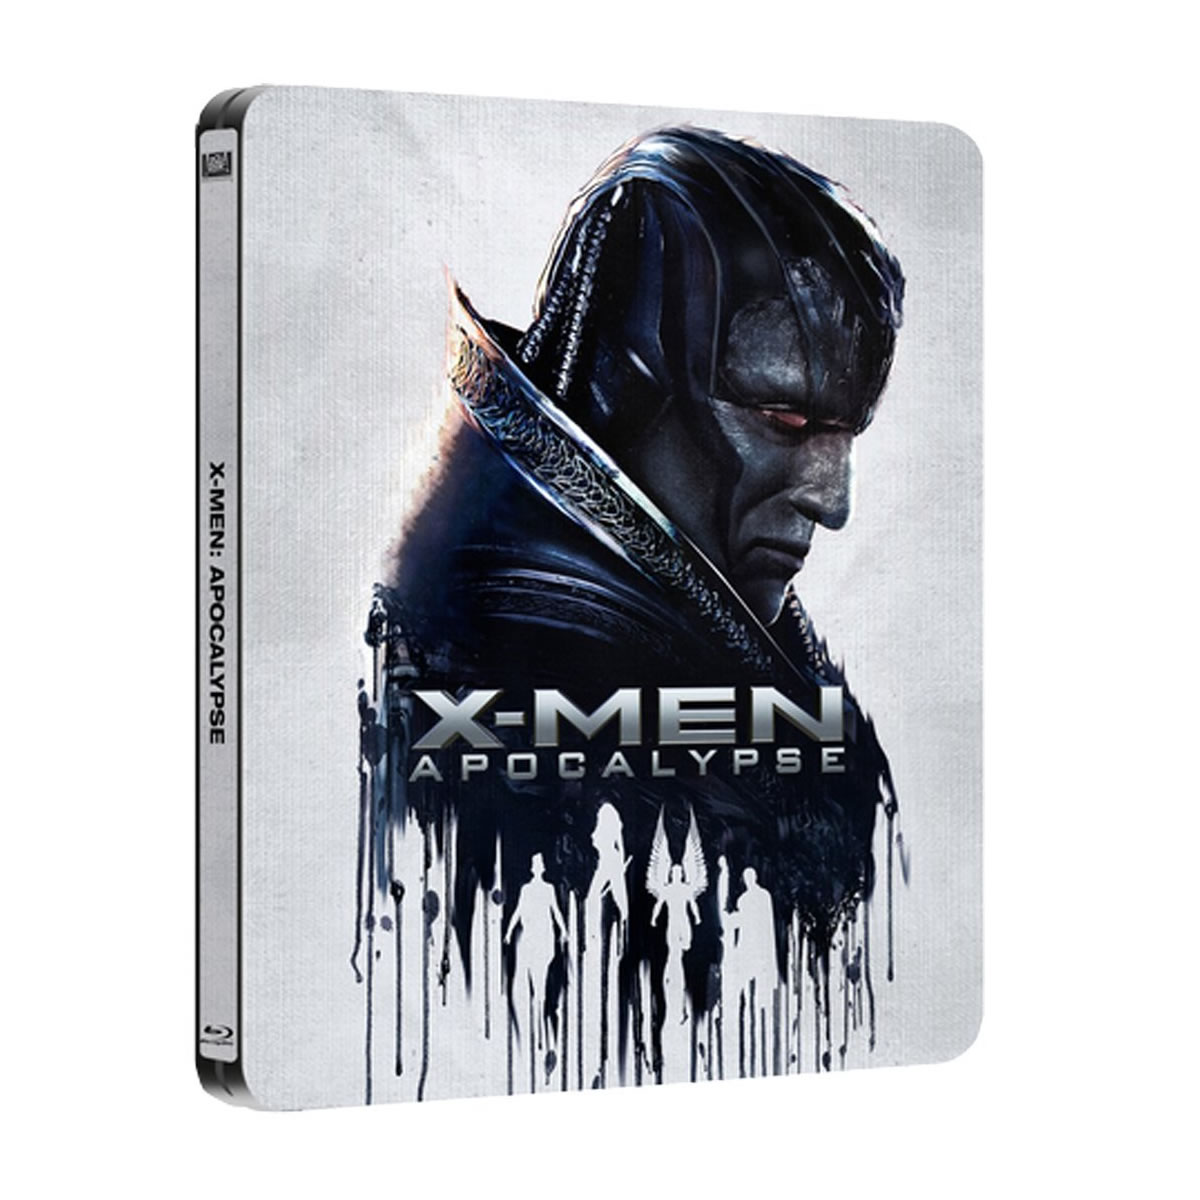 X-MEN: APOCALYPSE 3D - X-MEN: ΑΠΟΚΑΛΙΨ 3D Limited Edition Steelbook (BLU-RAY 3D + BLU-RAY)